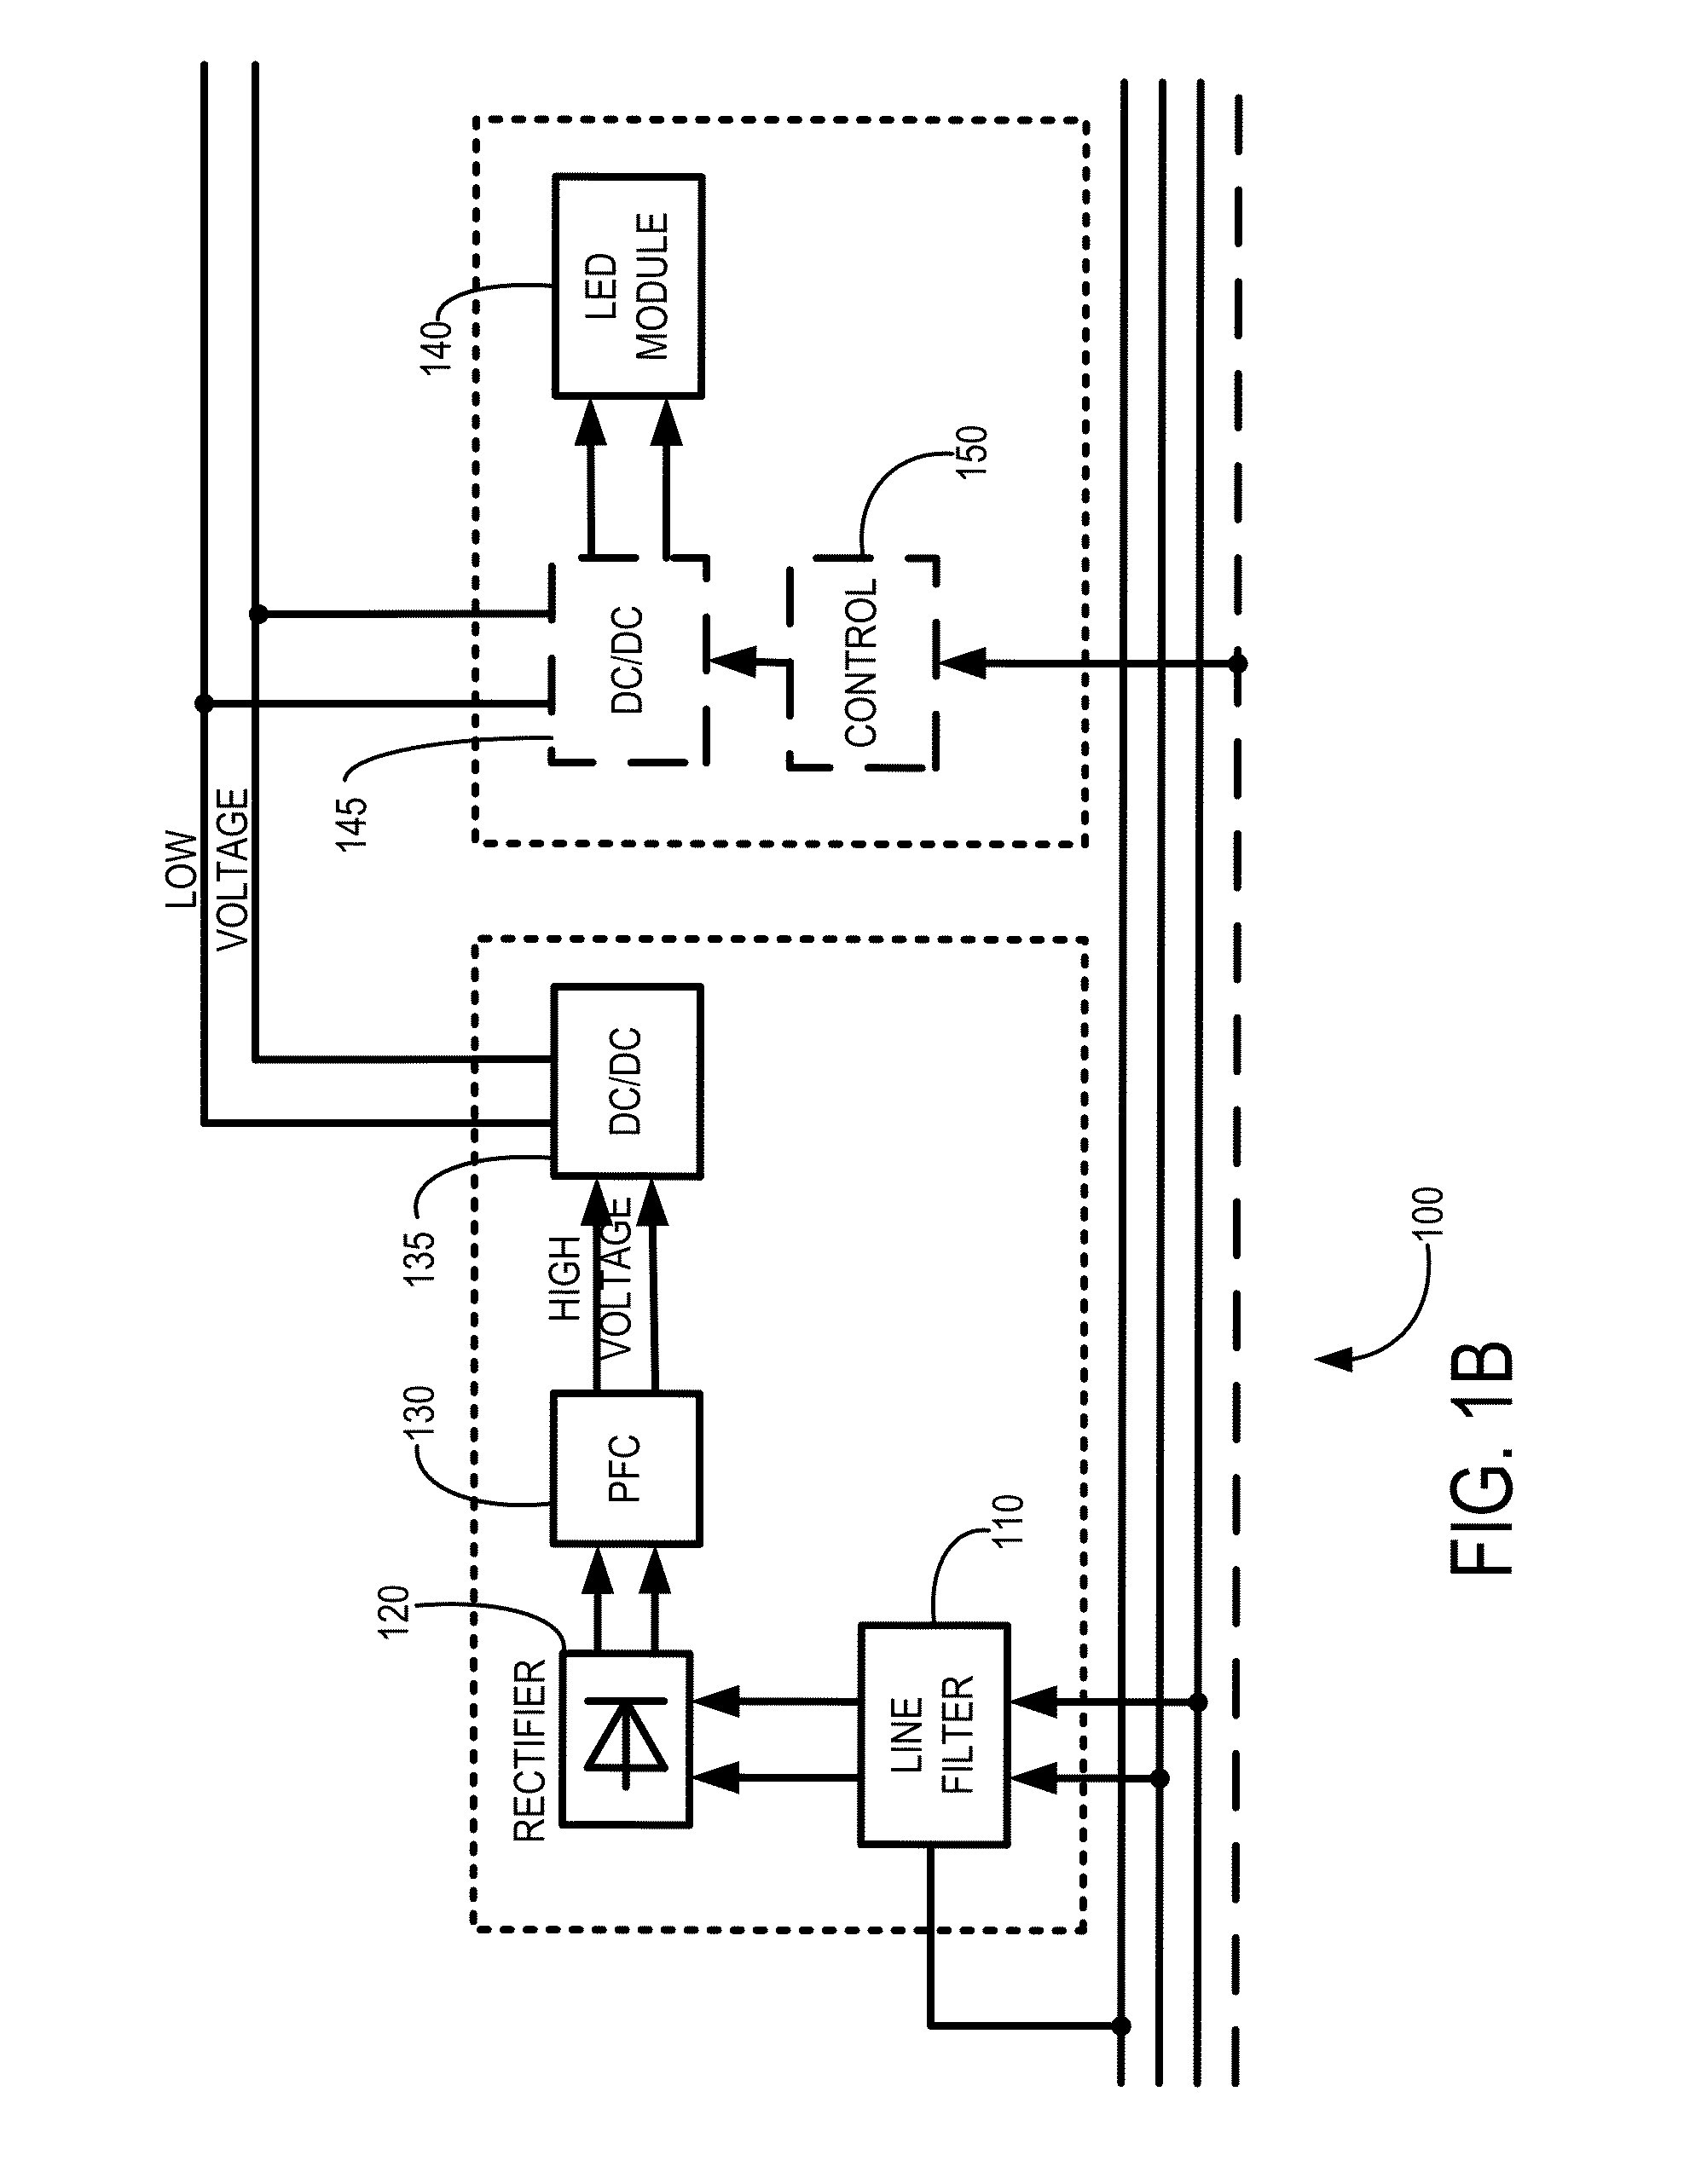 US20140103804A1 20140417 D00002 patent us20140103804 power distribution system and method for gva-24 wiring diagram at suagrazia.org